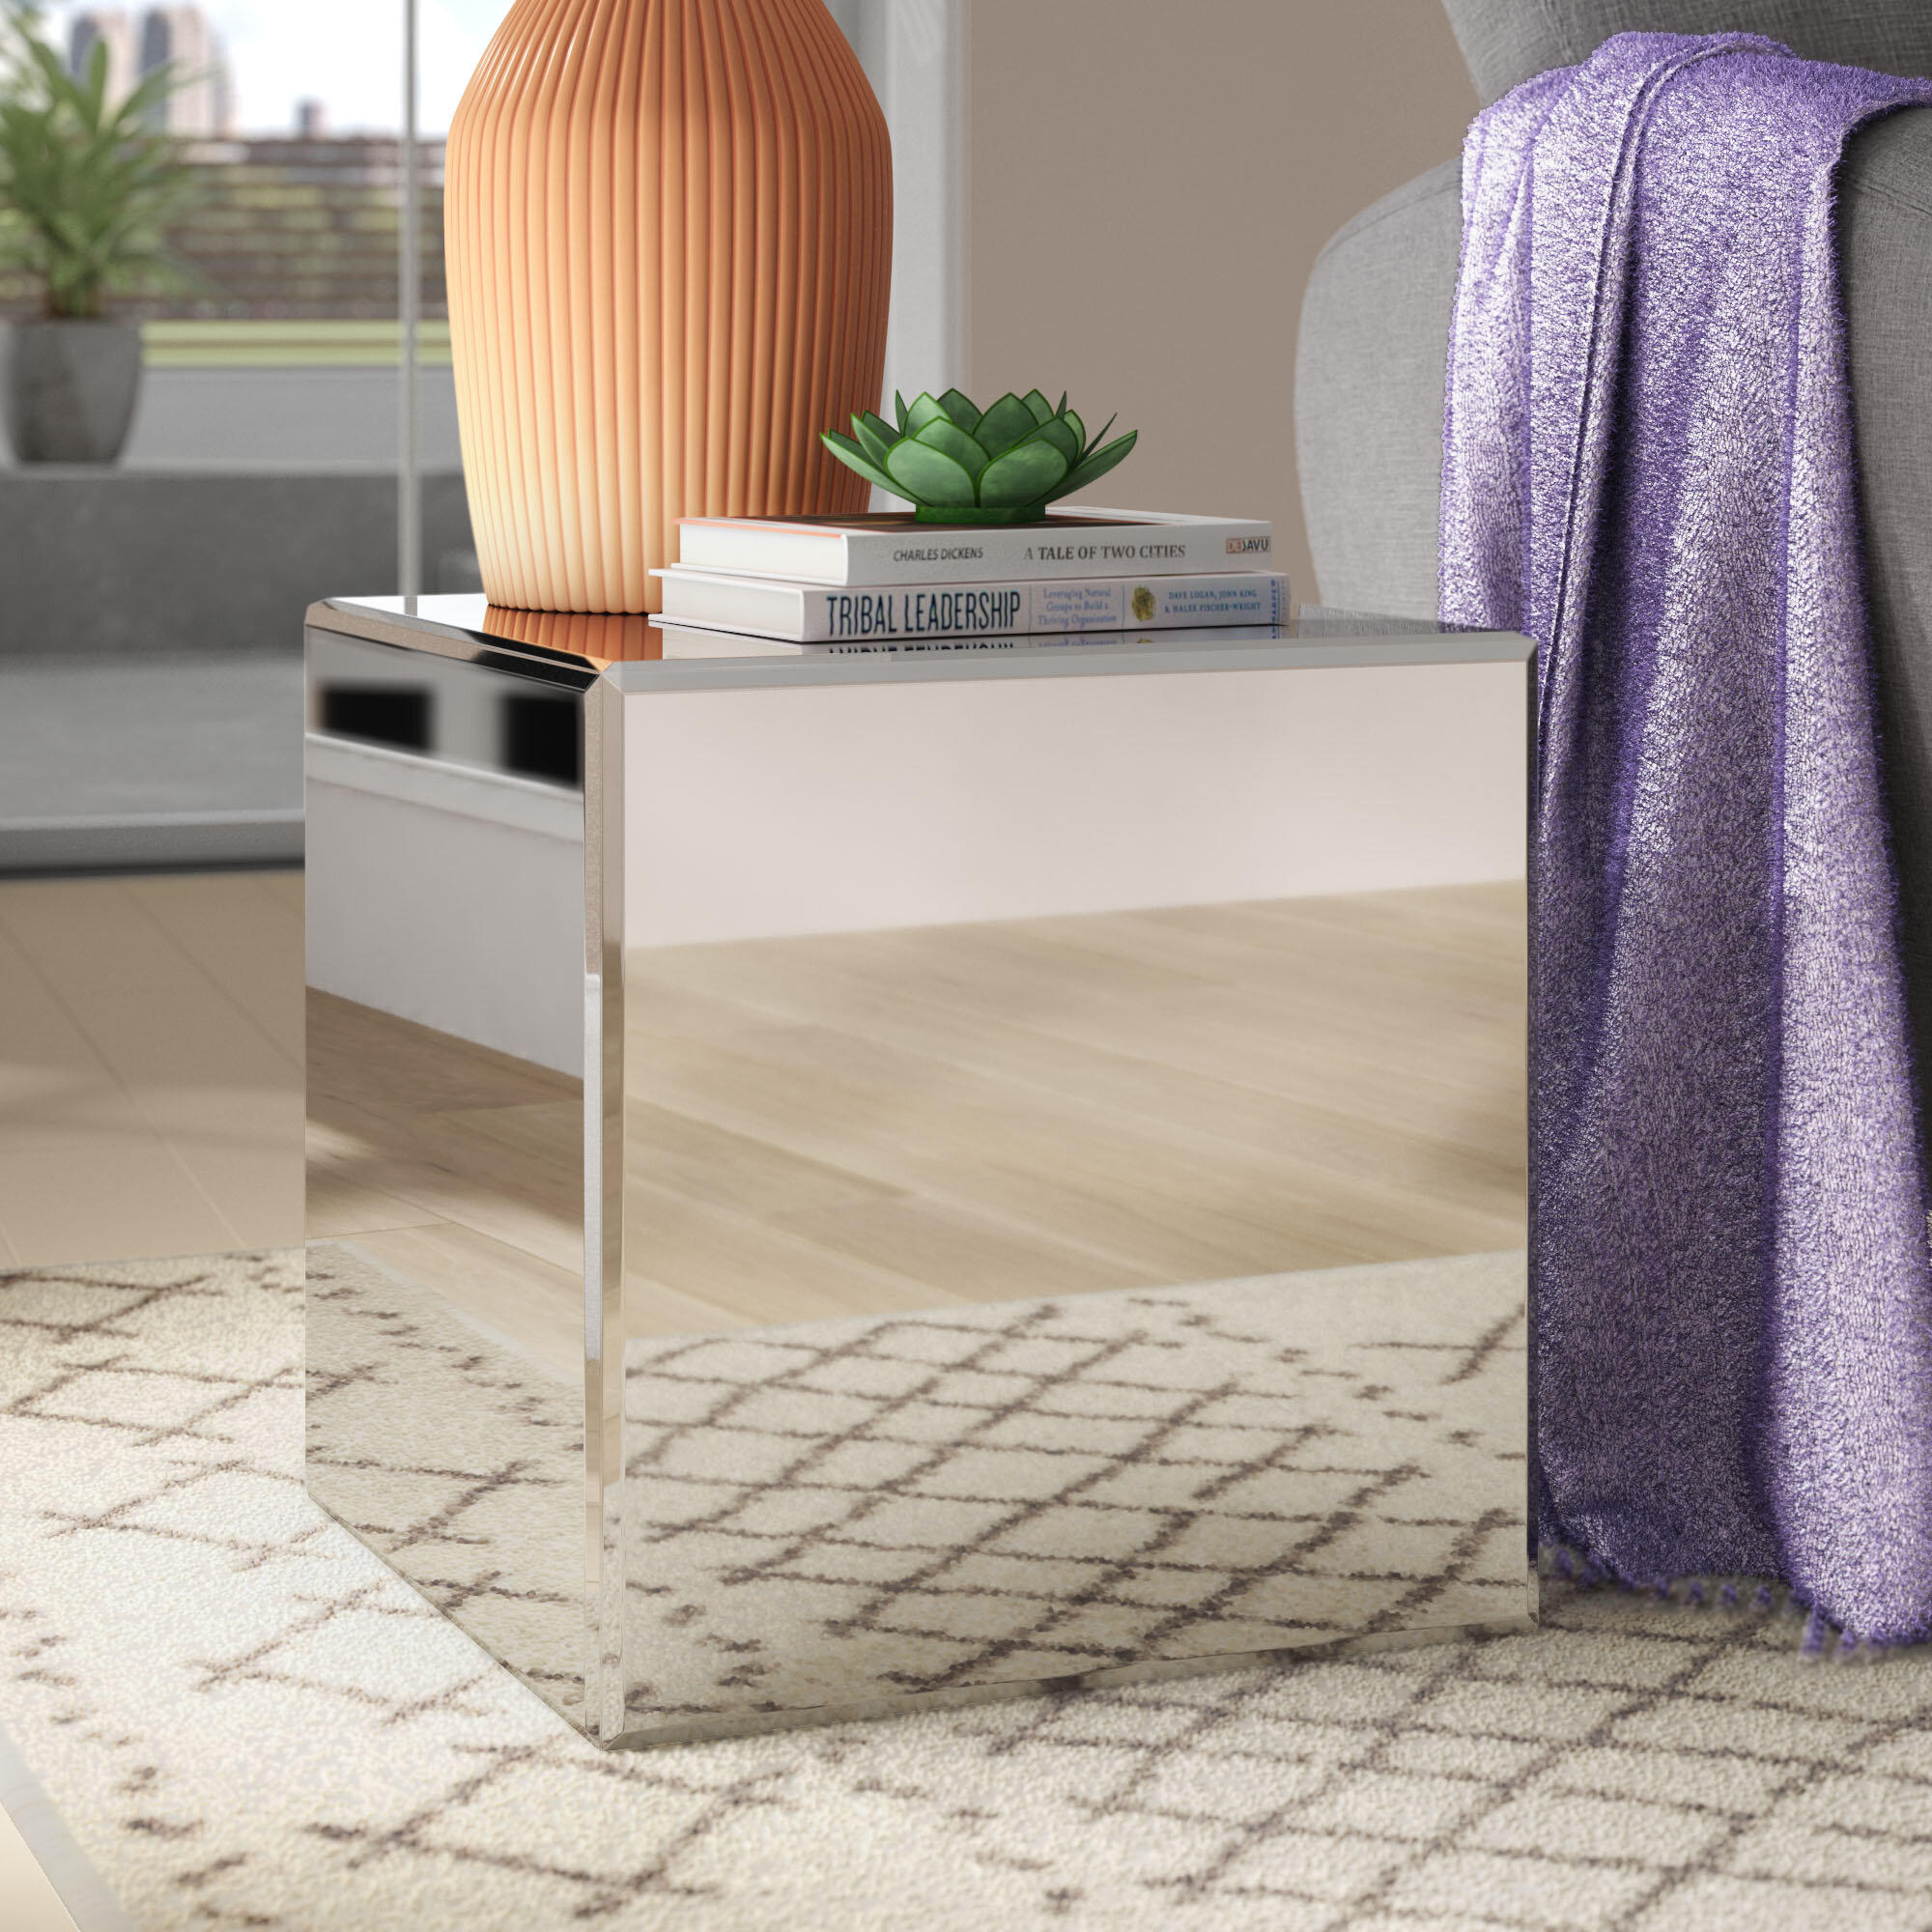 Mirrored Pedestal Stand End Table Sofa Side Furniture Mirror Cubes Wood Frame